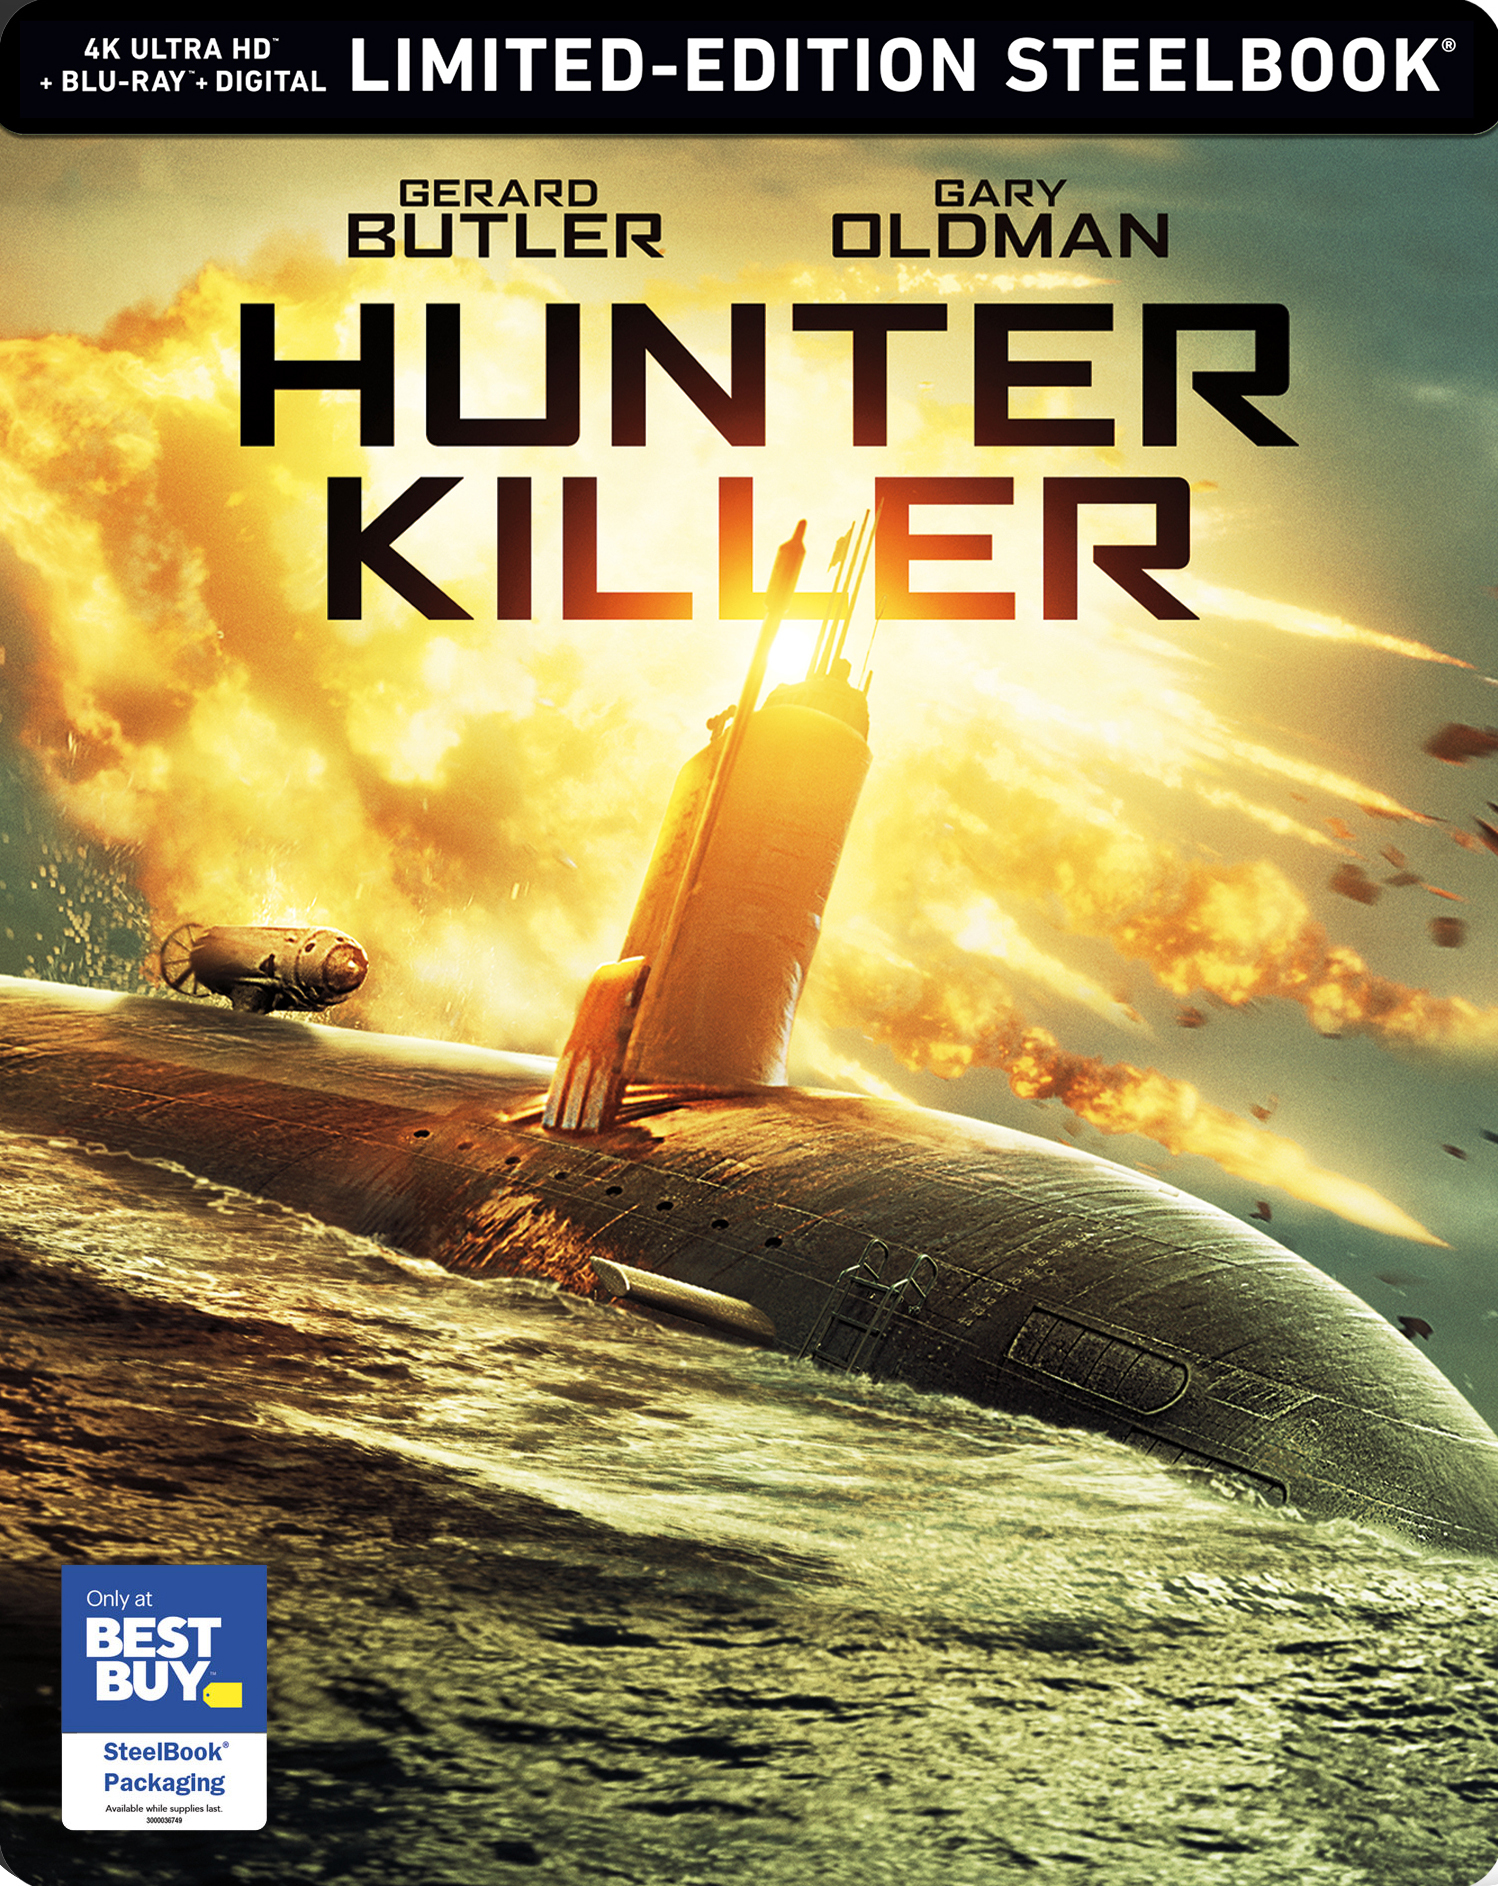 Hunter Killer (SteelBook)(4K Ultra HD Blu-ray)(Pre-order / Jan 29)